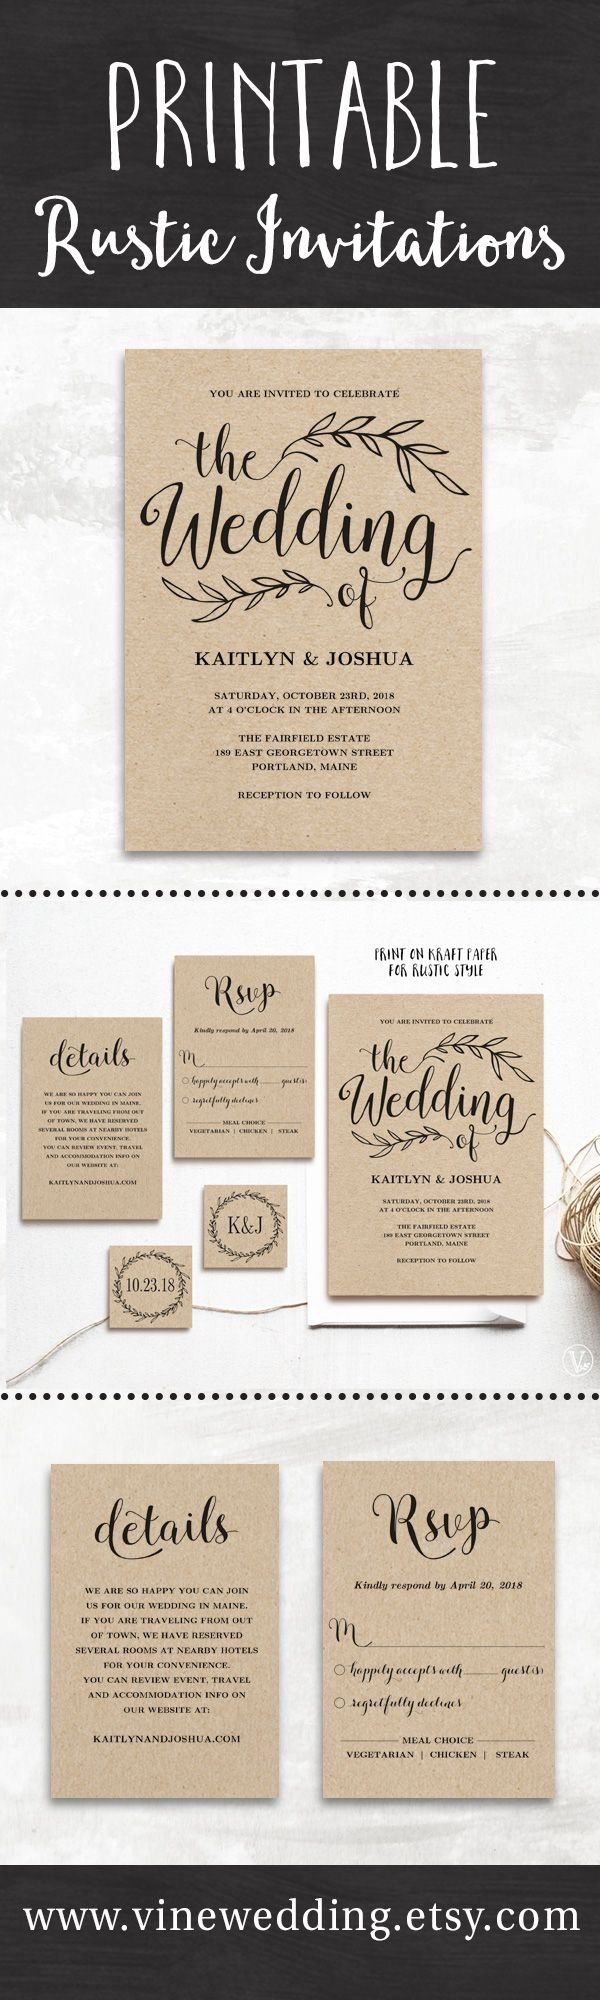 free wedding invitation templates country theme%0A Beautiful rustic wedding invitations  Editable instant download templates  you can print as many as you